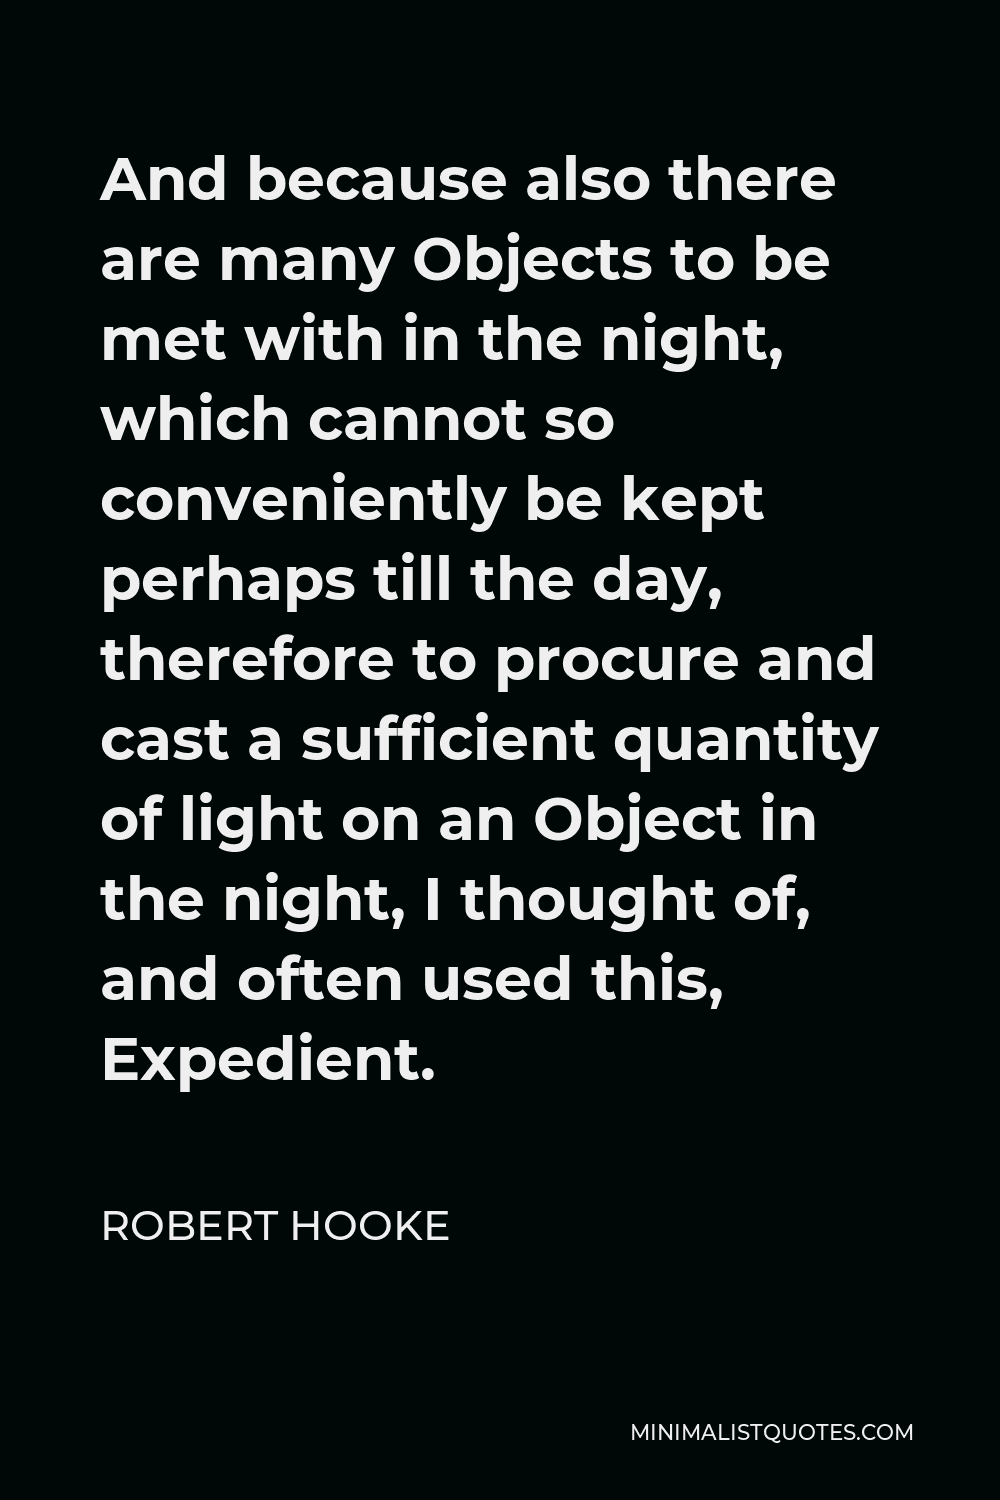 Robert Hooke Quote - And because also there are many Objects to be met with in the night, which cannot so conveniently be kept perhaps till the day, therefore to procure and cast a sufficient quantity of light on an Object in the night, I thought of, and often used this, Expedient.